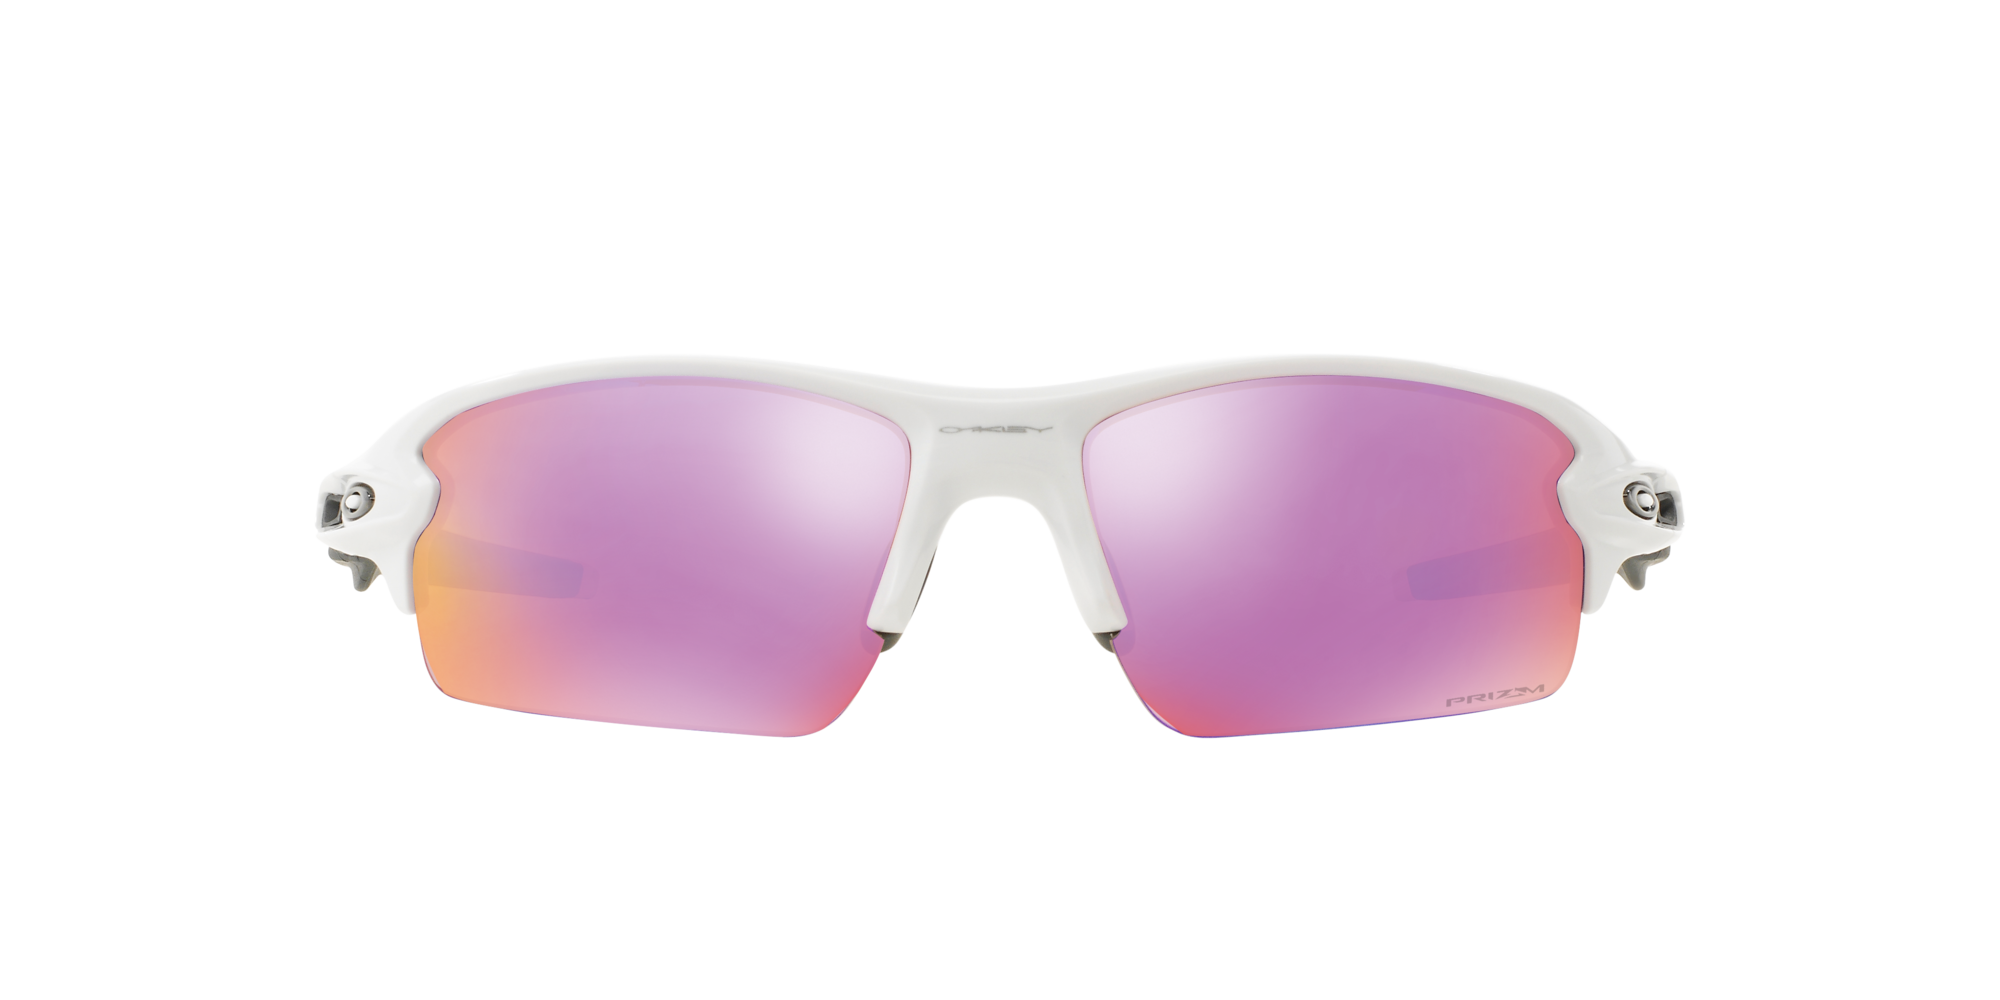 d70c0810d2 ... OAKLEY OO 9295 929506 PRIZM. 360° Product View 360° Product View ...